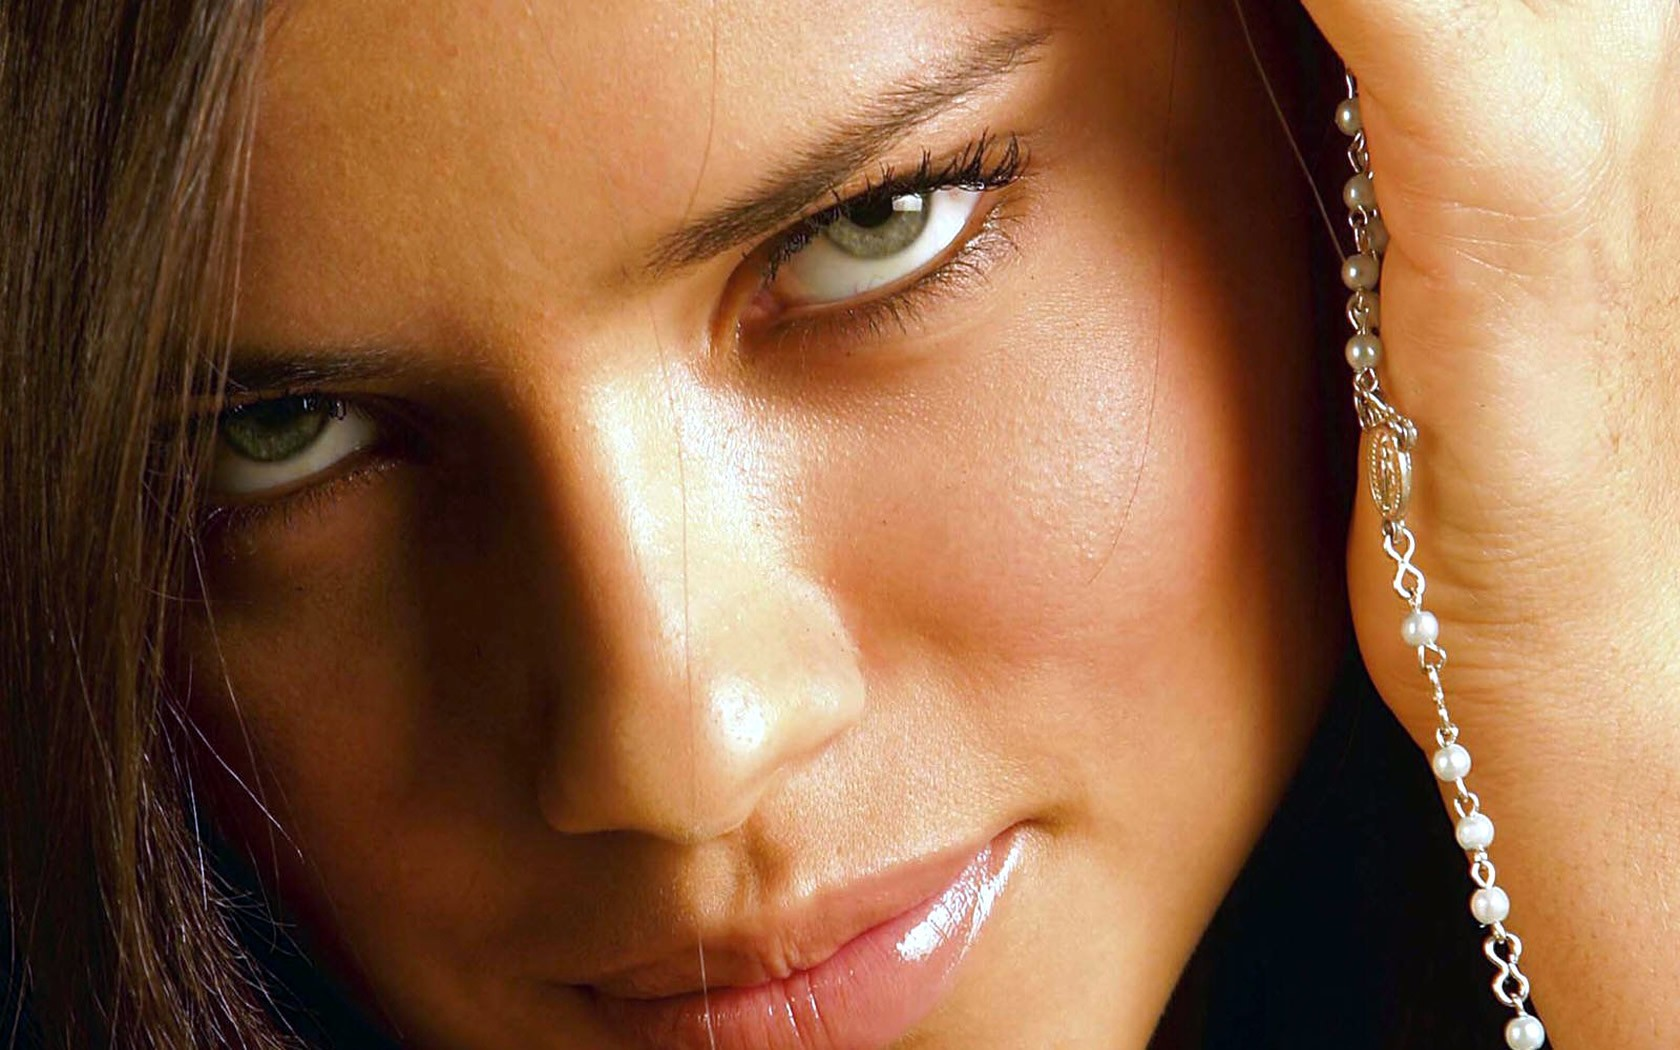 woman adriana lima supermodels HD Wallpaper